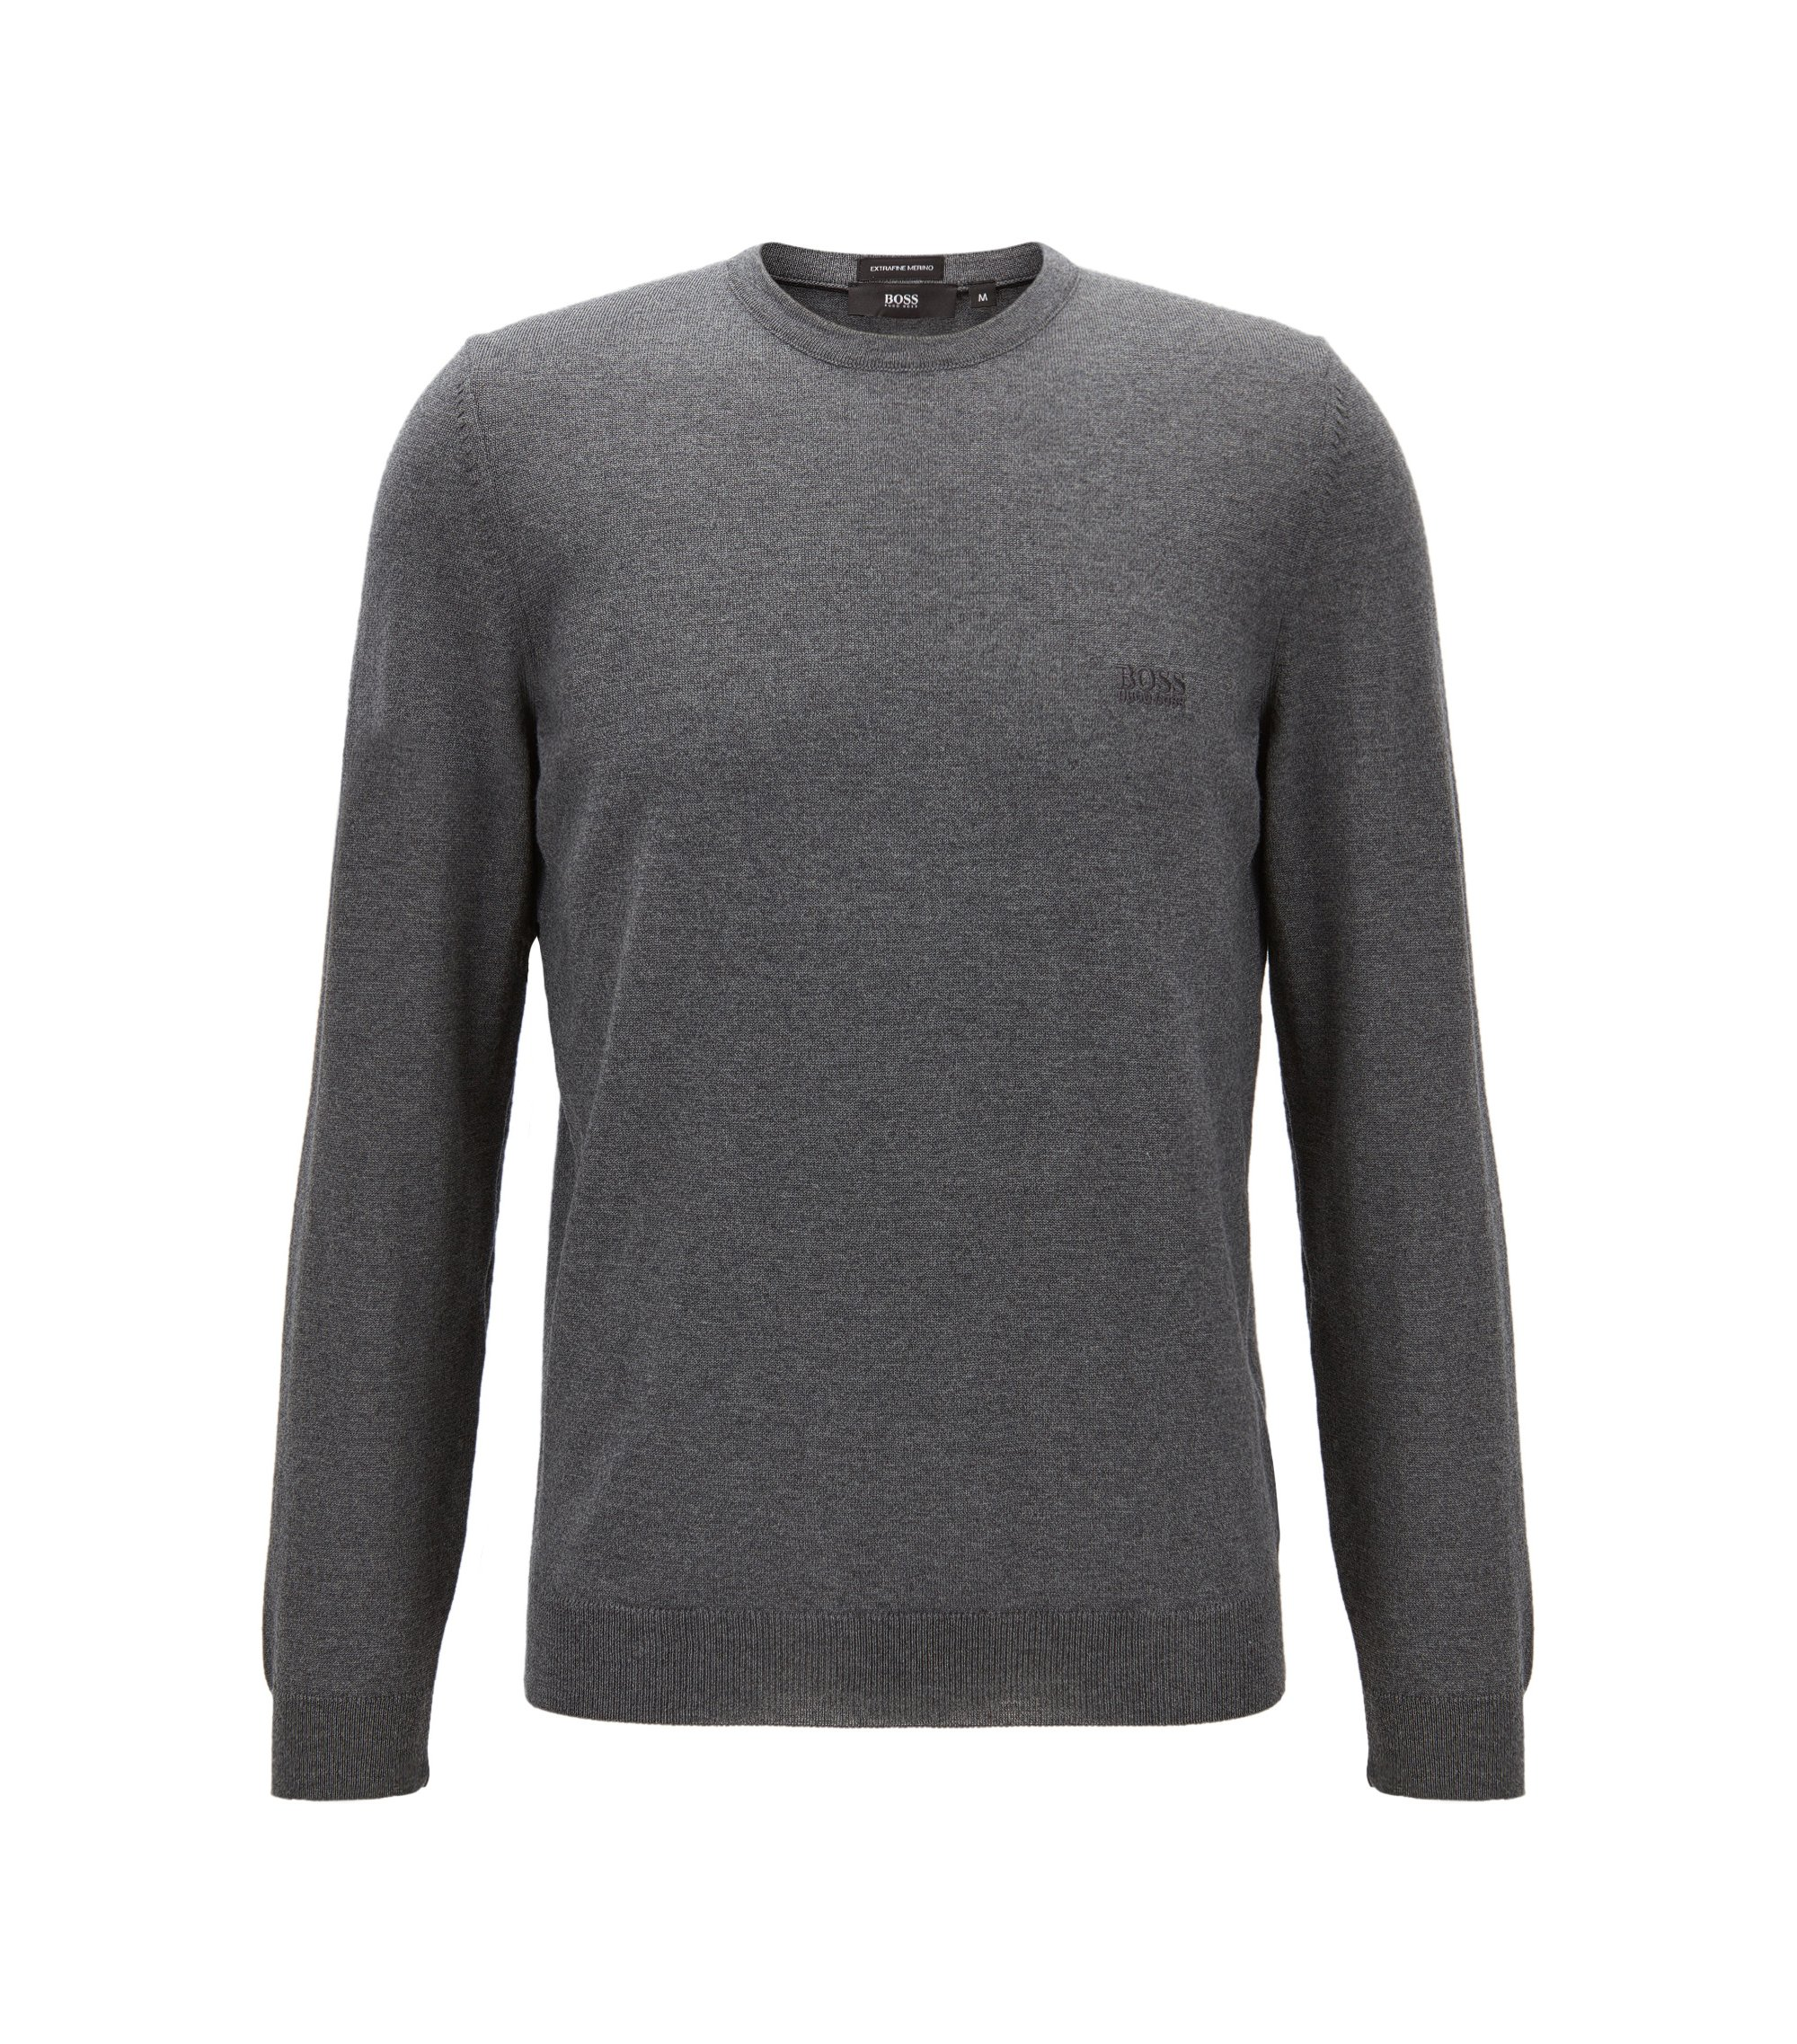 Crew-neck sweater in virgin wool jersey, Grey